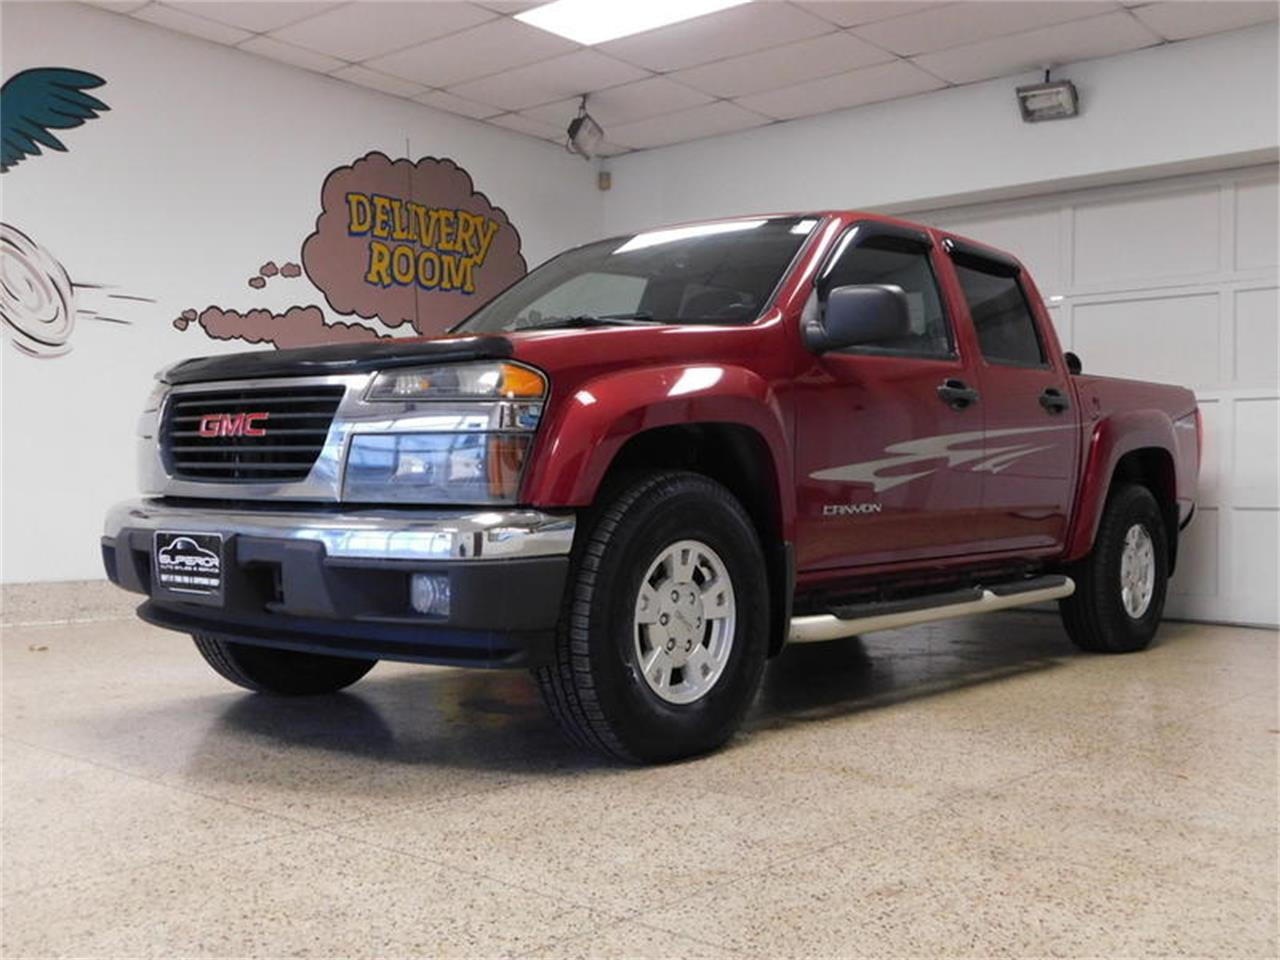 2005 gmc canyon for sale classiccars com cc 1168559 2005 gmc canyon for sale classiccars